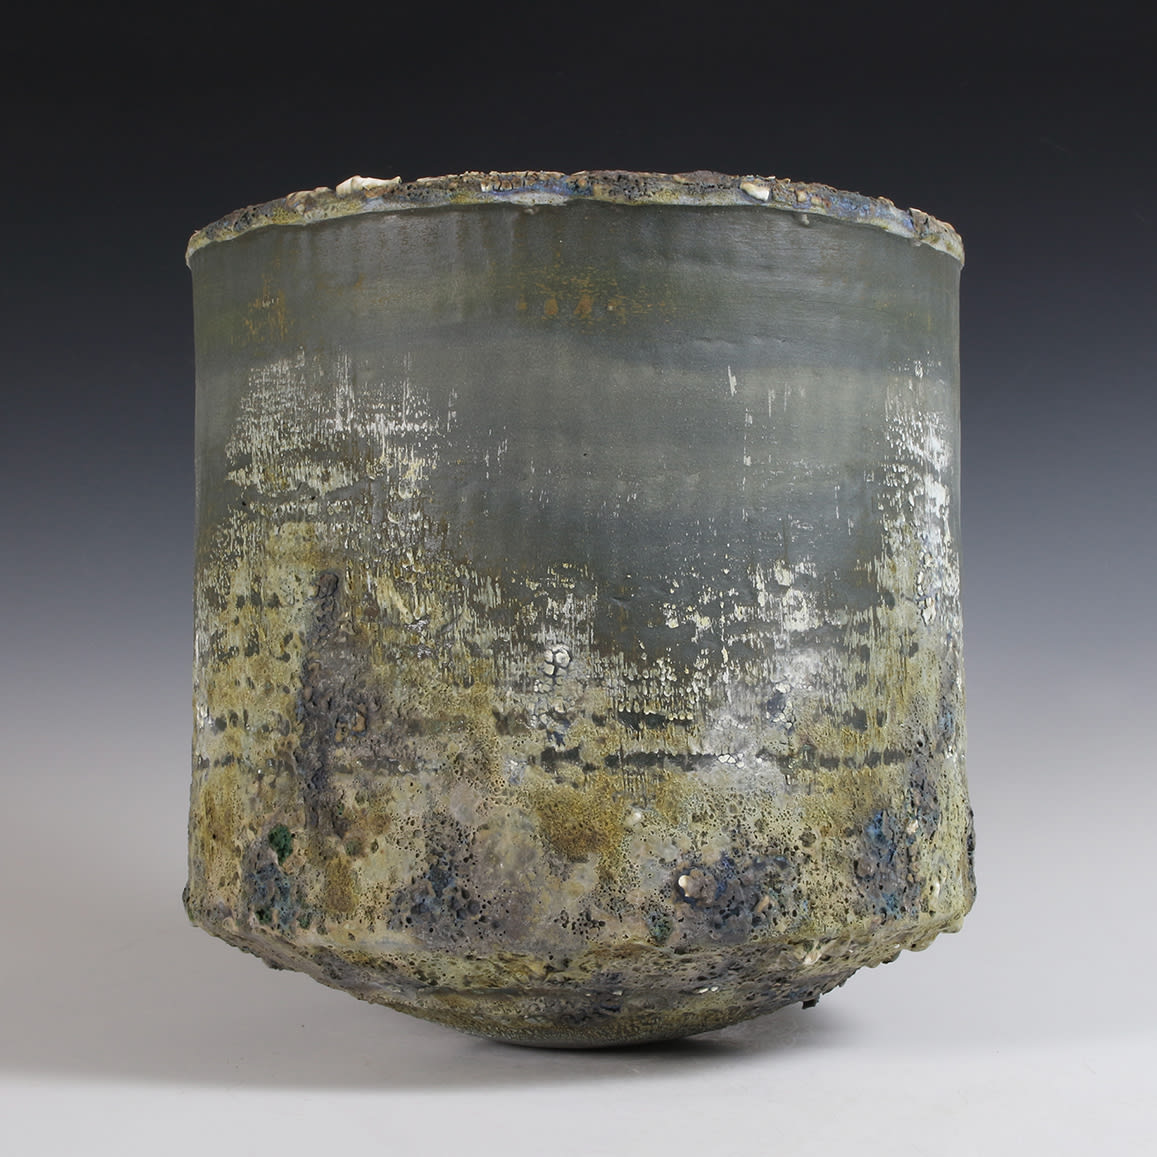 """<span class=""""link fancybox-details-link""""><a href=""""/content/feature/40/artworks7991/"""">View Detail Page</a></span><div class=""""signed_and_dated"""">impressed seal mark 'PW'</div> <div class=""""medium"""">stoneware, multiple slips and glazes</div> <div class=""""dimensions"""">21.5 x 21 cm</div>"""